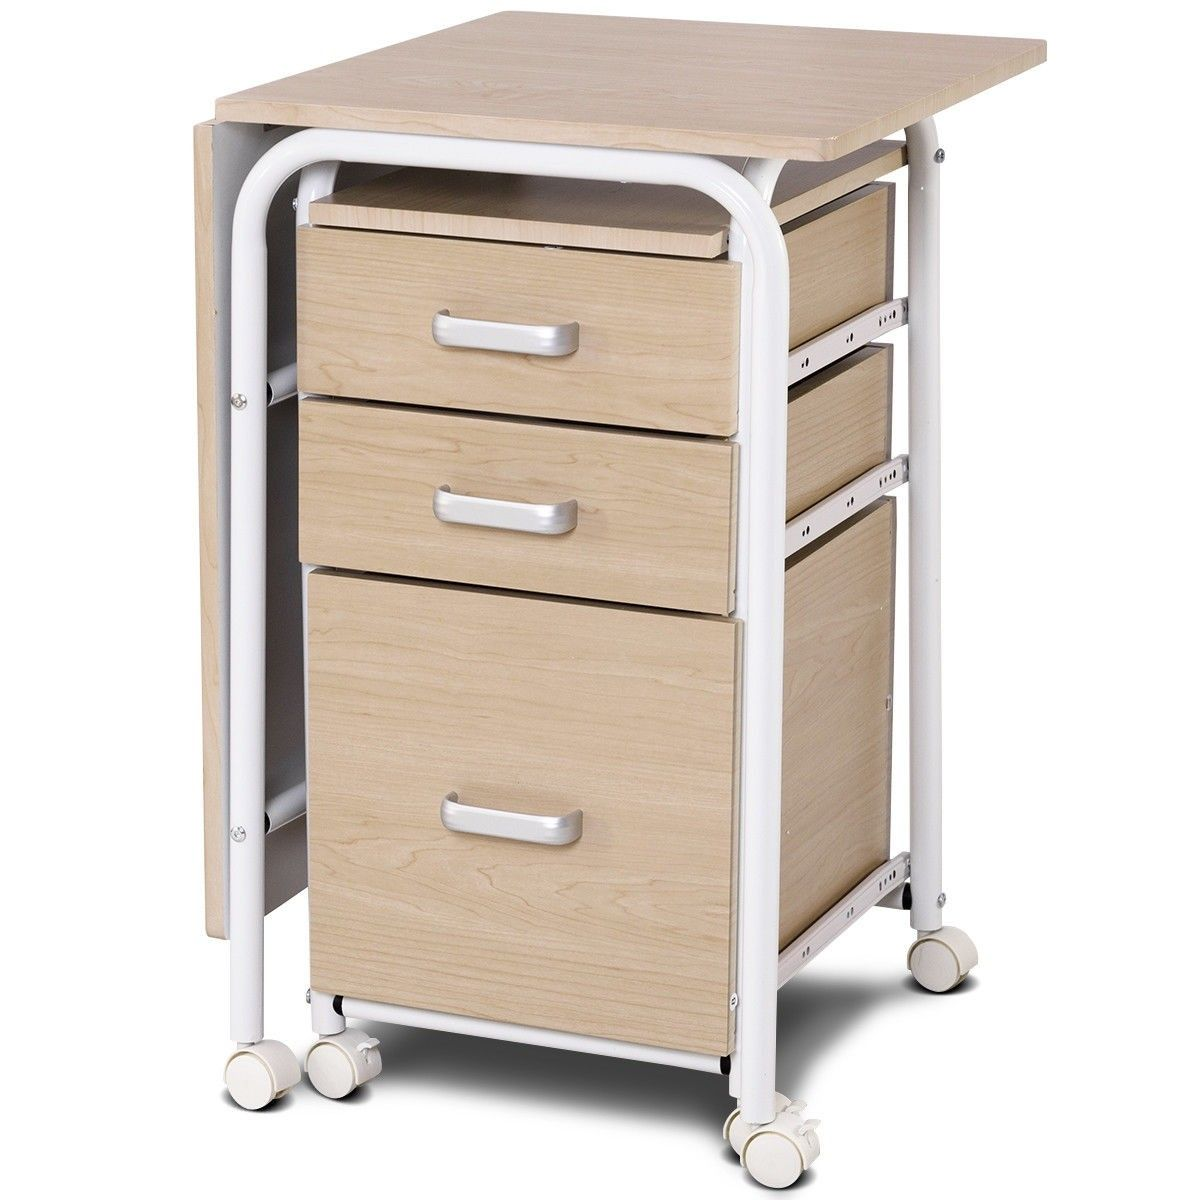 Folding Computer Laptop Desk Wheeled Home Office Furniture 104 95 Free Shipping This Is The Fol Home Office Furniture Home Office Furniture Desk Laptop Desk